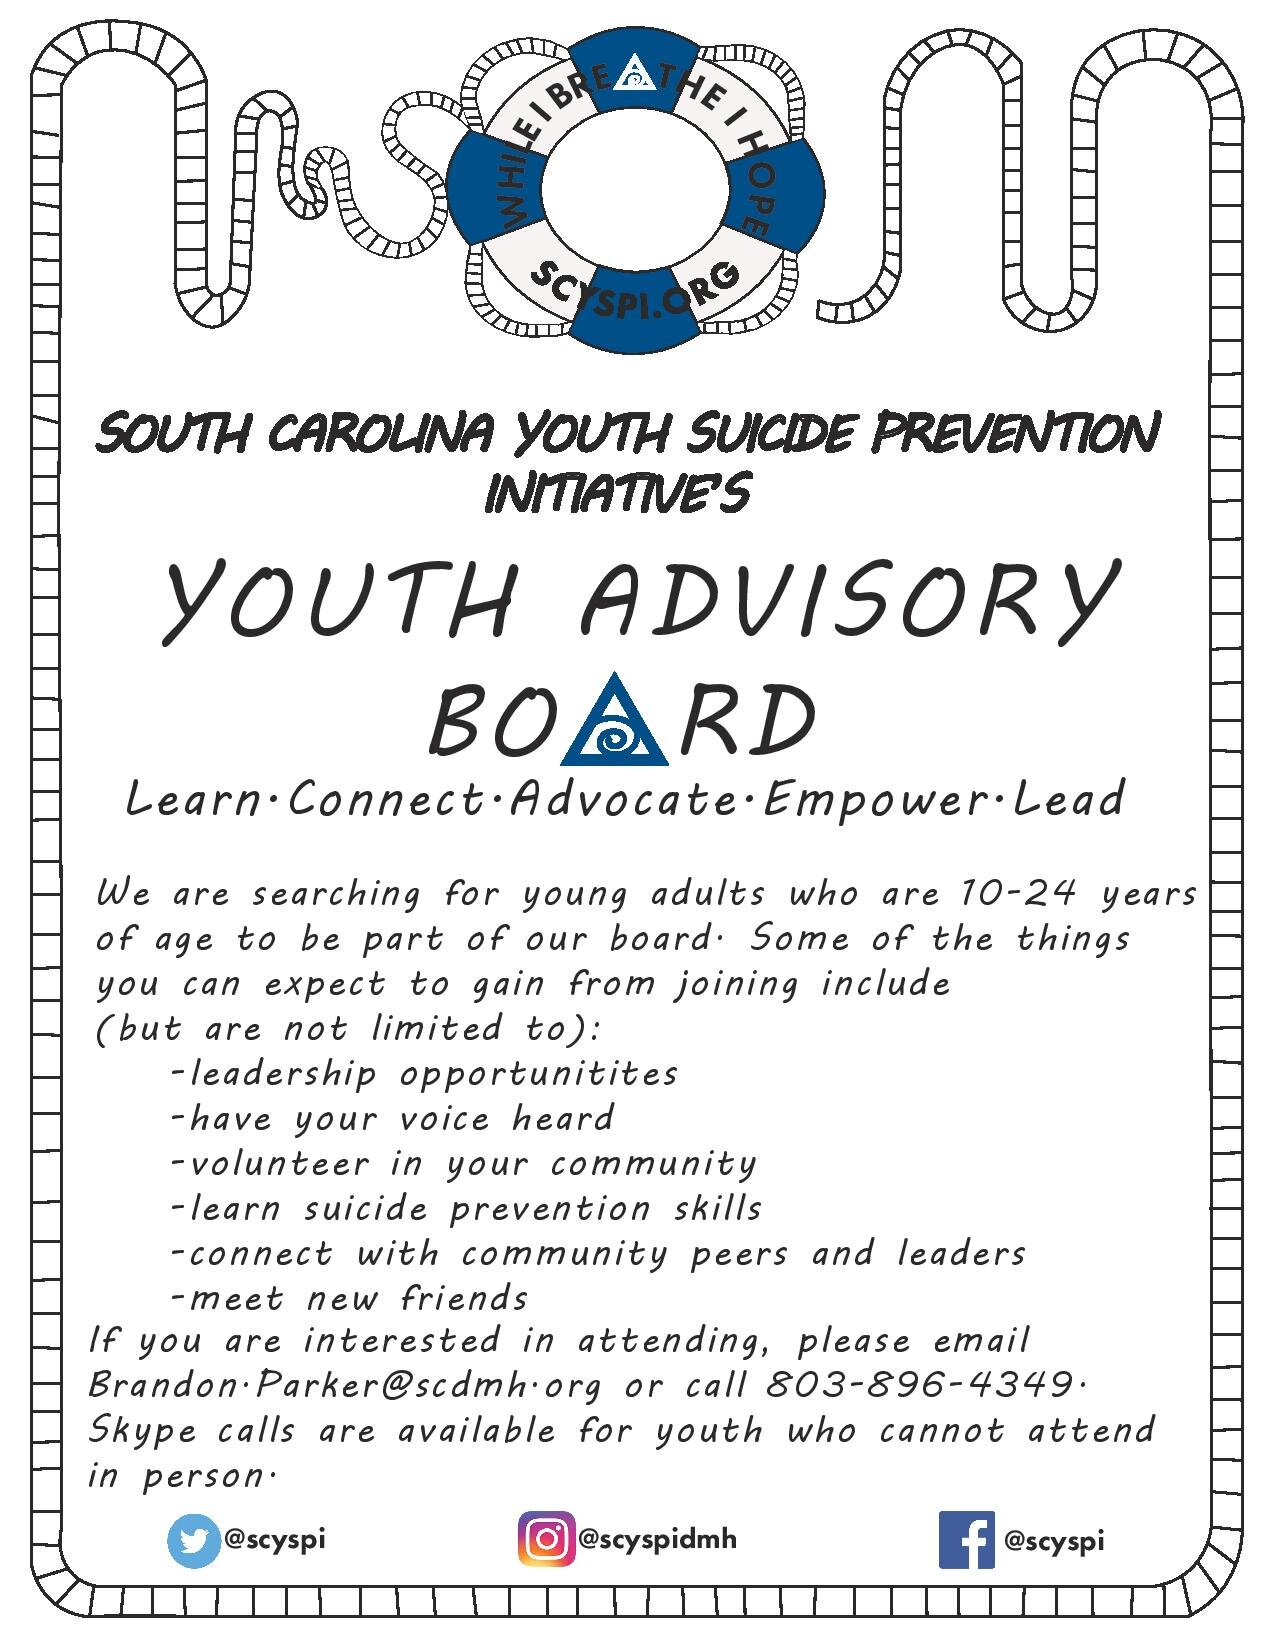 Youth Advisory Board Flyer - Click to view PDF